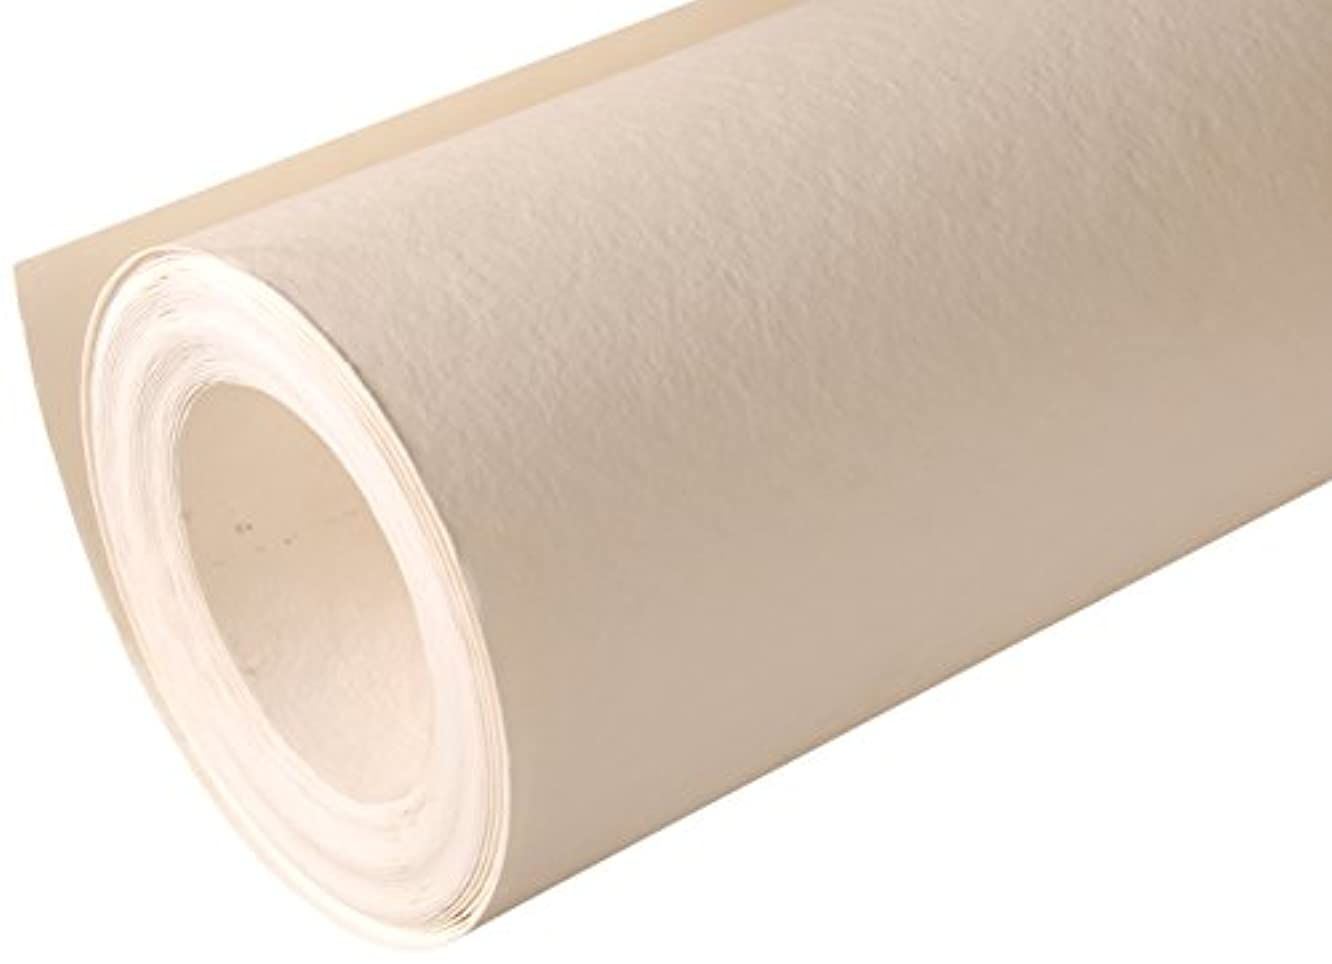 Clairefontaine 10 x 1.96 m Grained Paper Roll, 224 g, White